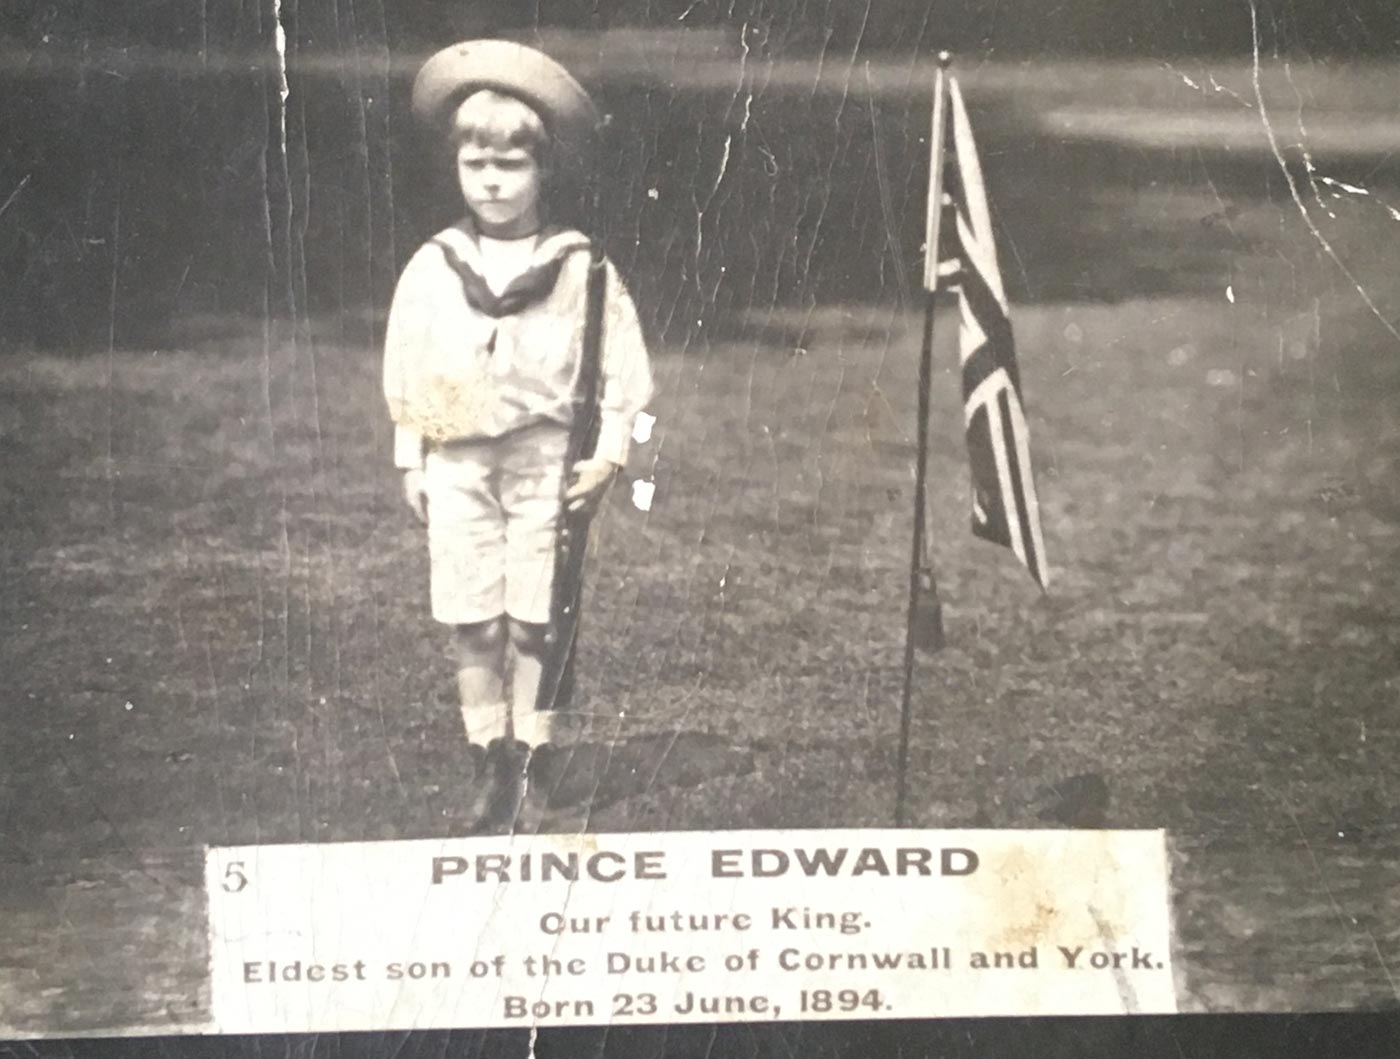 Black and white postcard featuring a young boy holding a gun with the British flag to the right of him. There is a label with the text: PRINCE EDWARD / OUR FUTURE KING. - click to view larger image